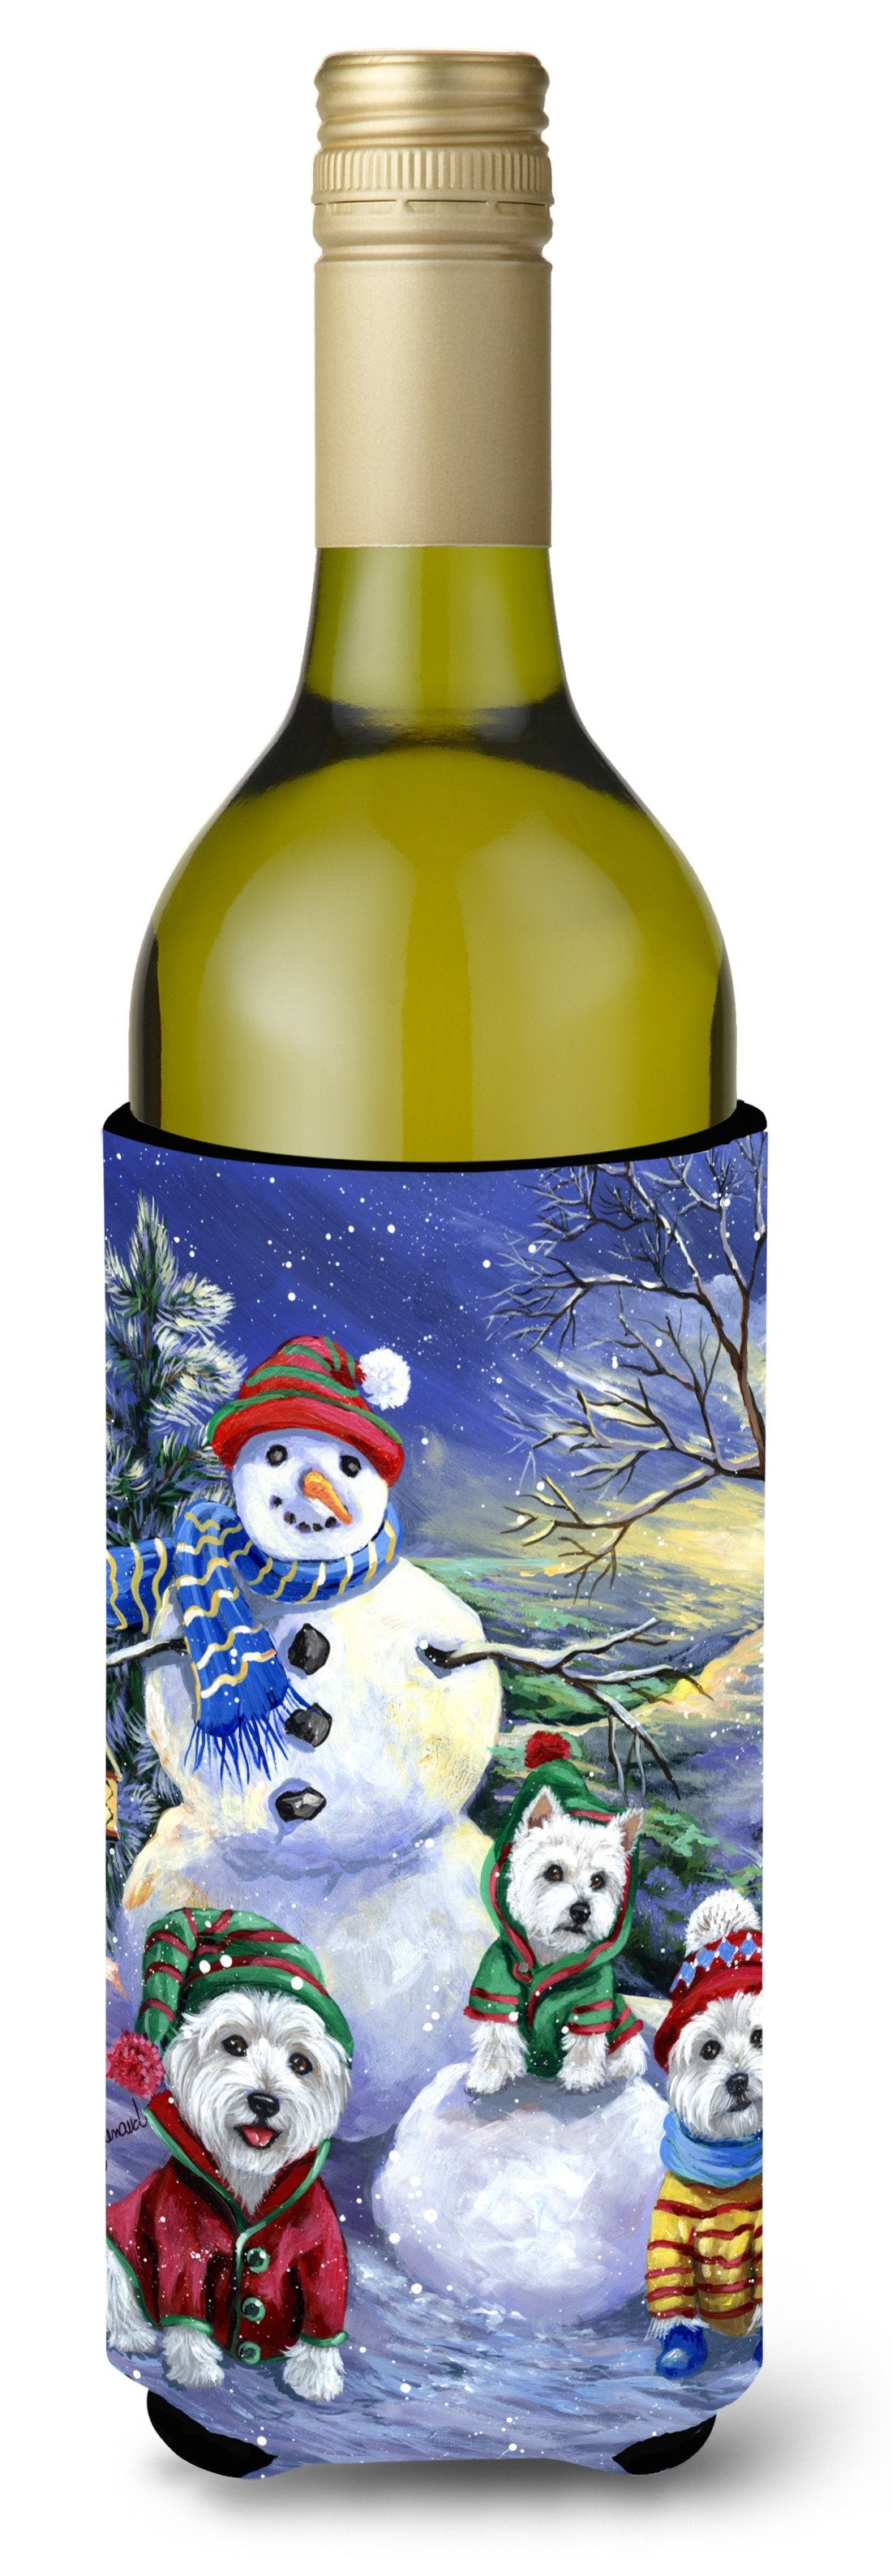 Westie Holiay Snowballs Wine Bottle Hugger PPP3208LITERK by Caroline's Treasures